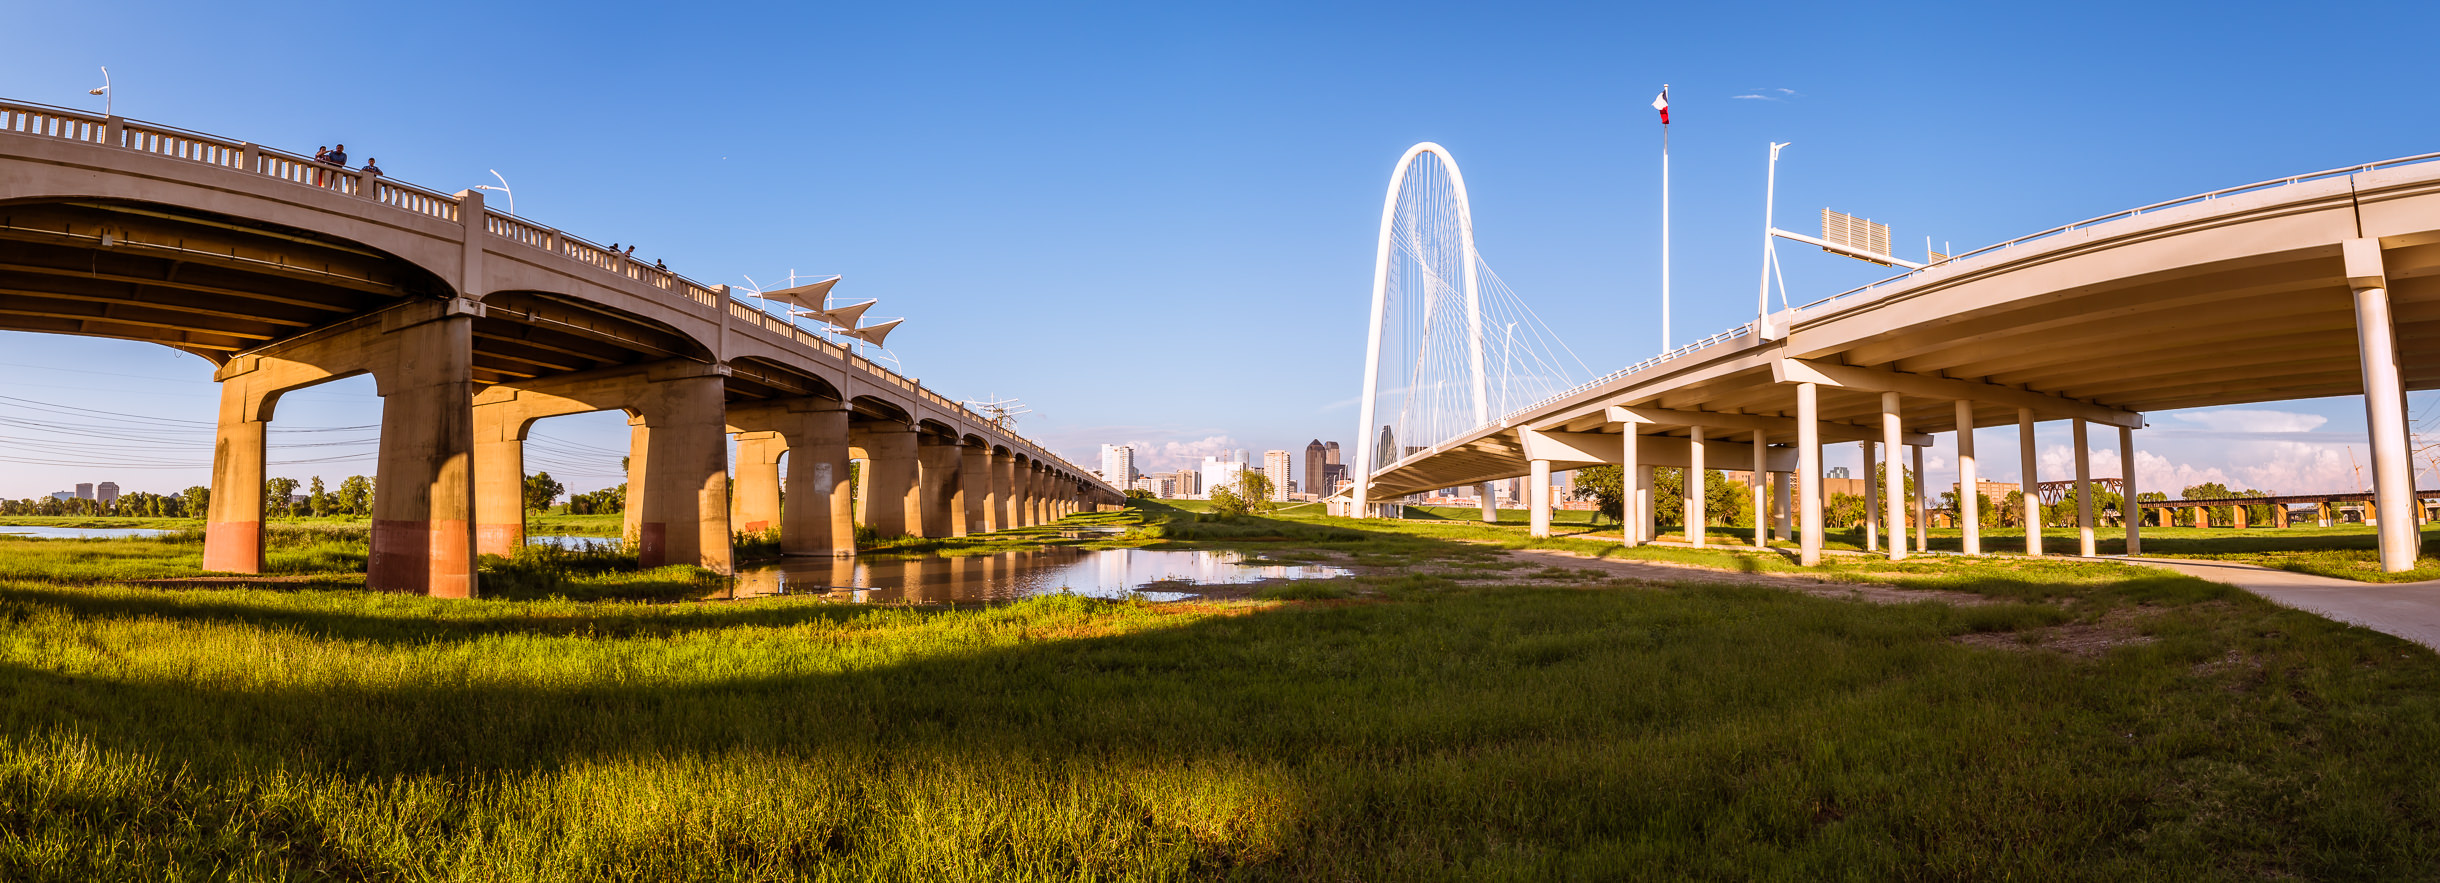 The Continental Avenue Viaduct and the Santiago Calatrava-designed Margaret Hunt Hill Bridge stretch over the Trinity River towards Downtown Dallas.